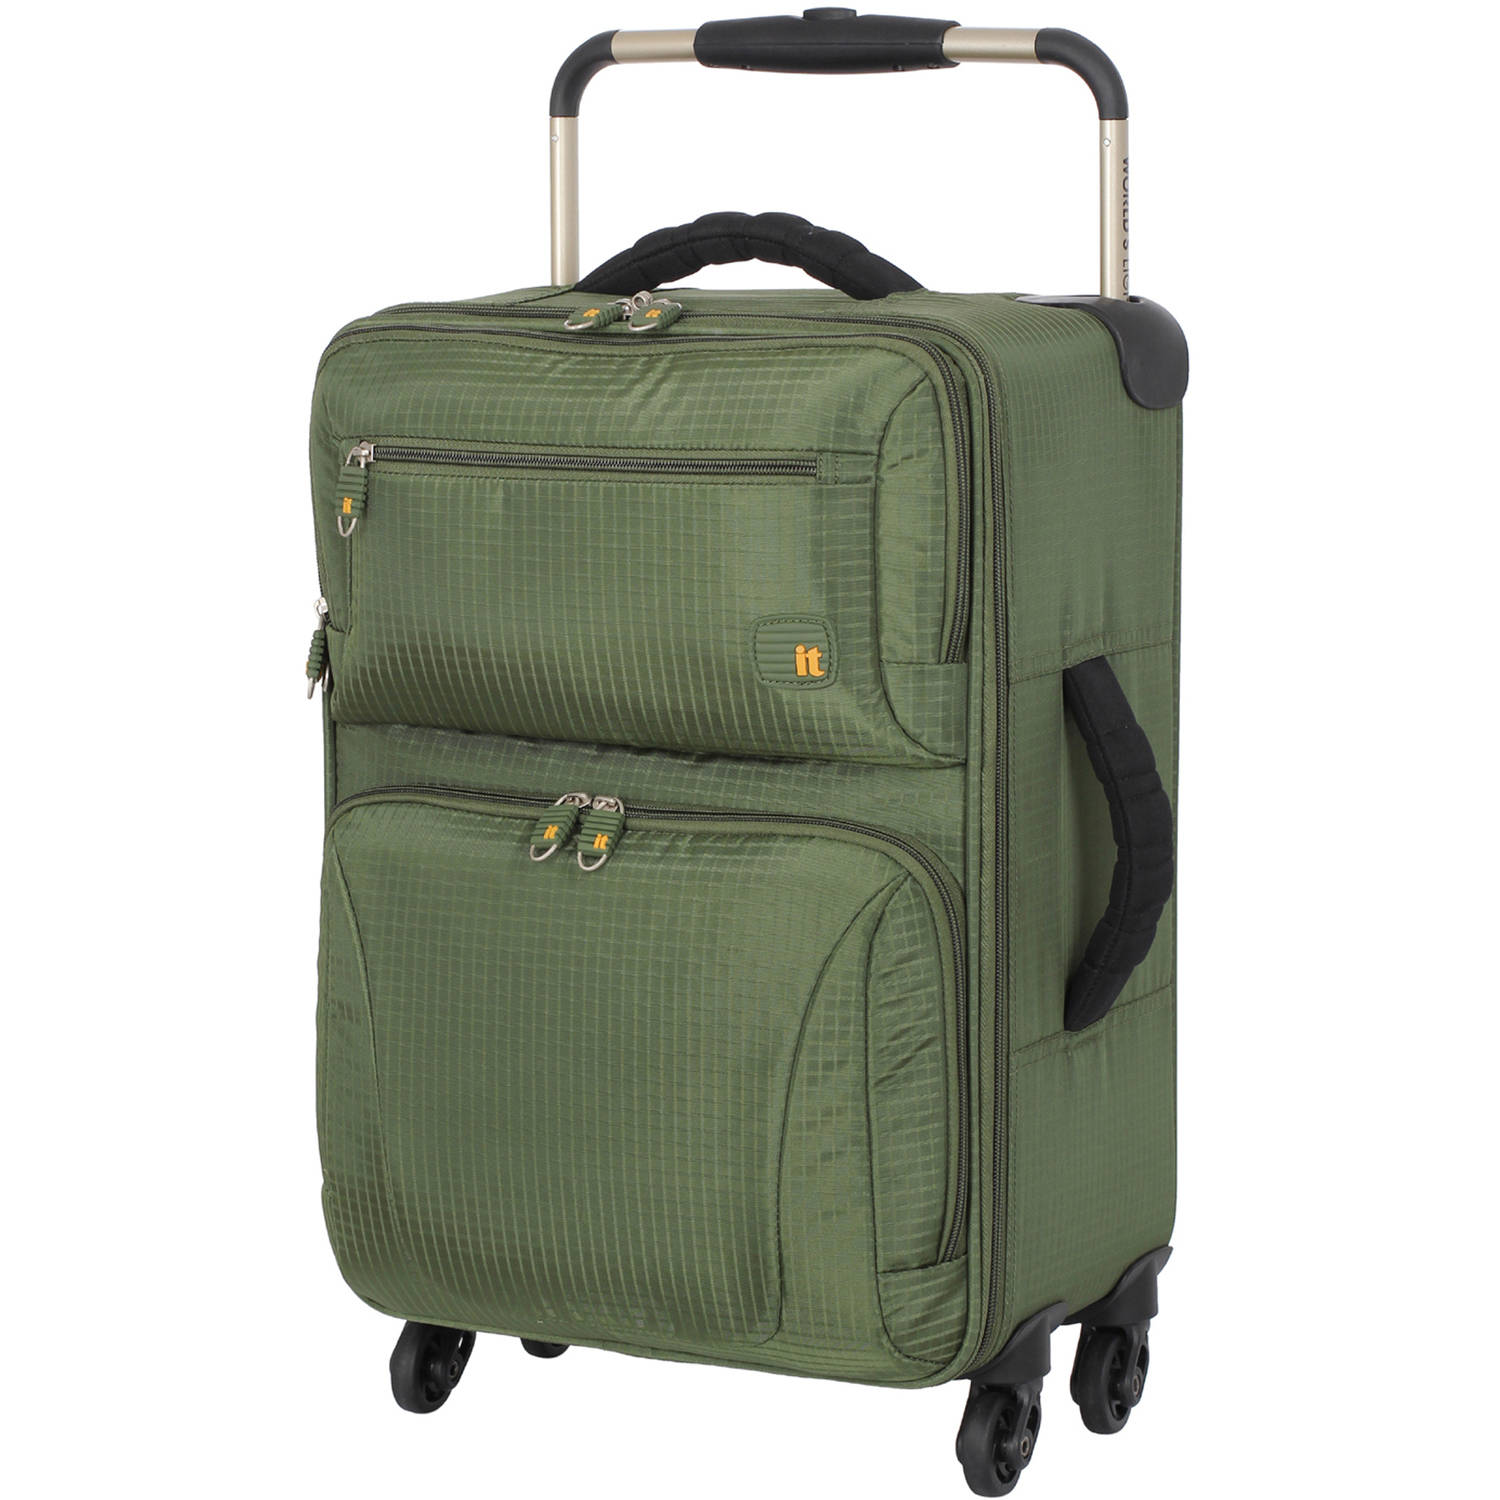 "It Luggage 21"" Ultra Lightweight 4-Wheel Carry-On Luggage, Olive"